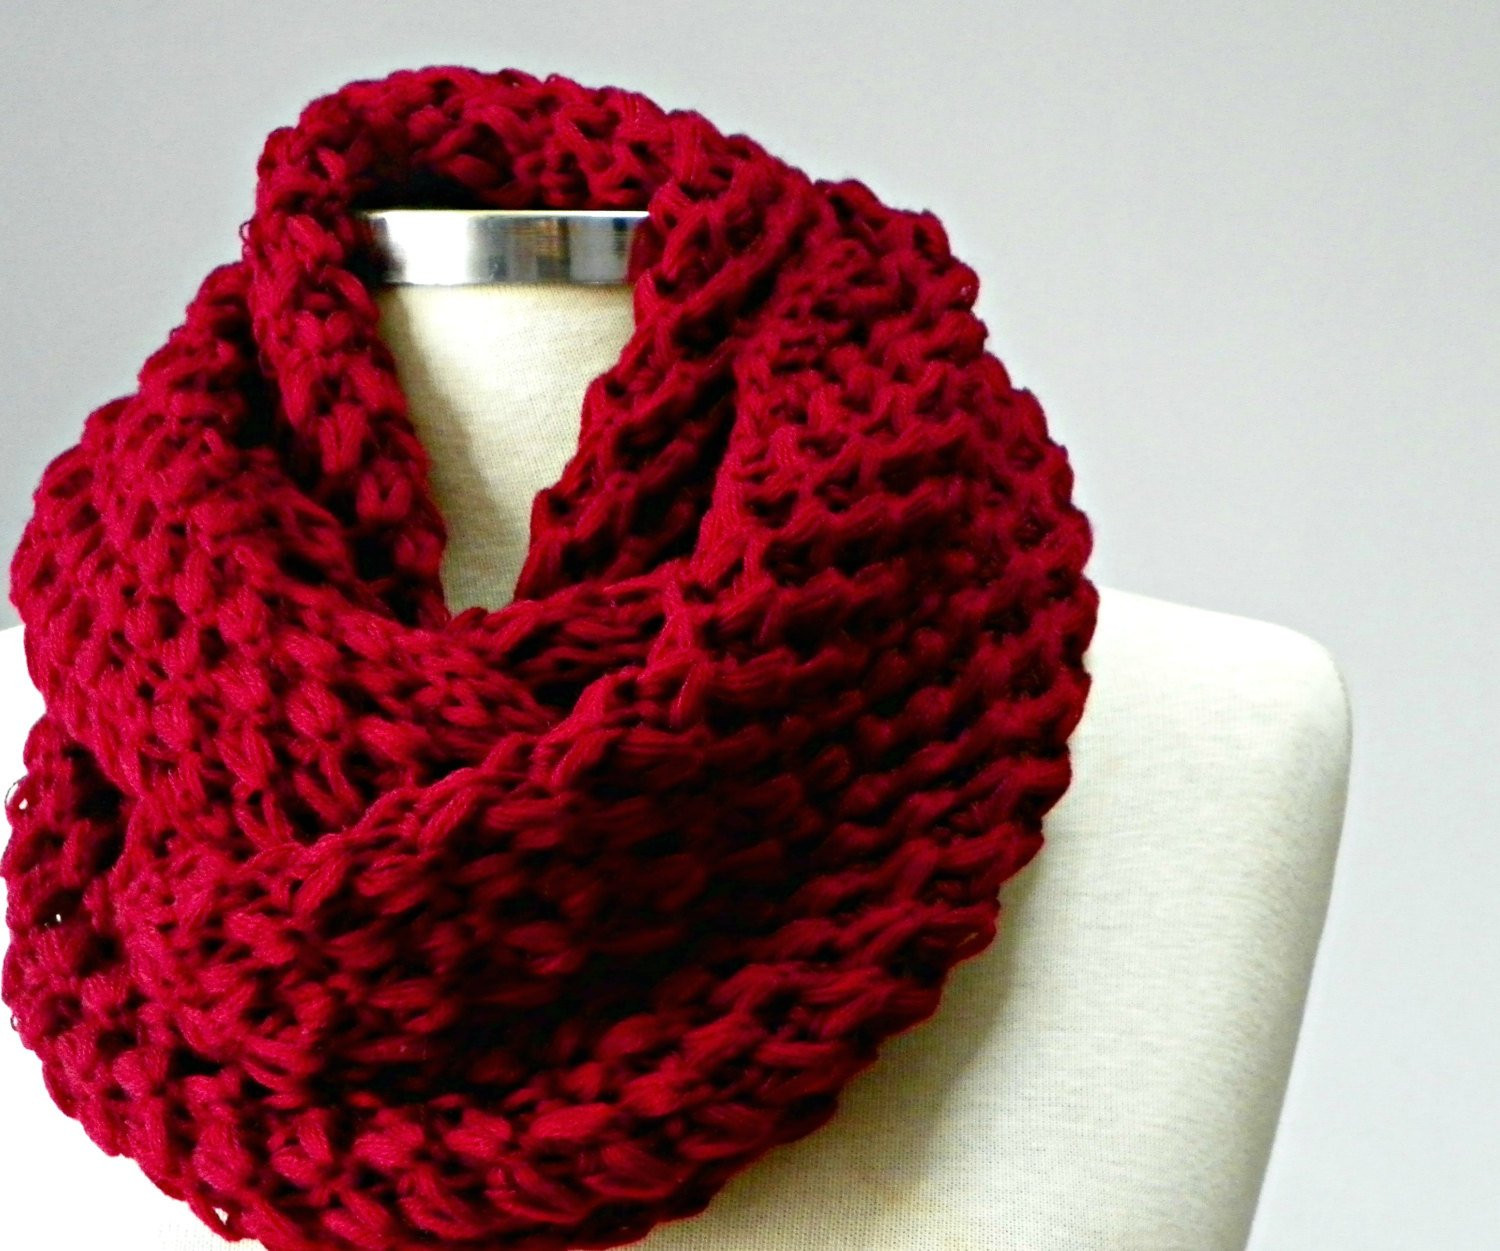 Knit Infinity Scarf Inspirational Sale Knit Scarf Knitted Infinity Scarf Chunky Cowl Scarf Of Wonderful 49 Photos Knit Infinity Scarf